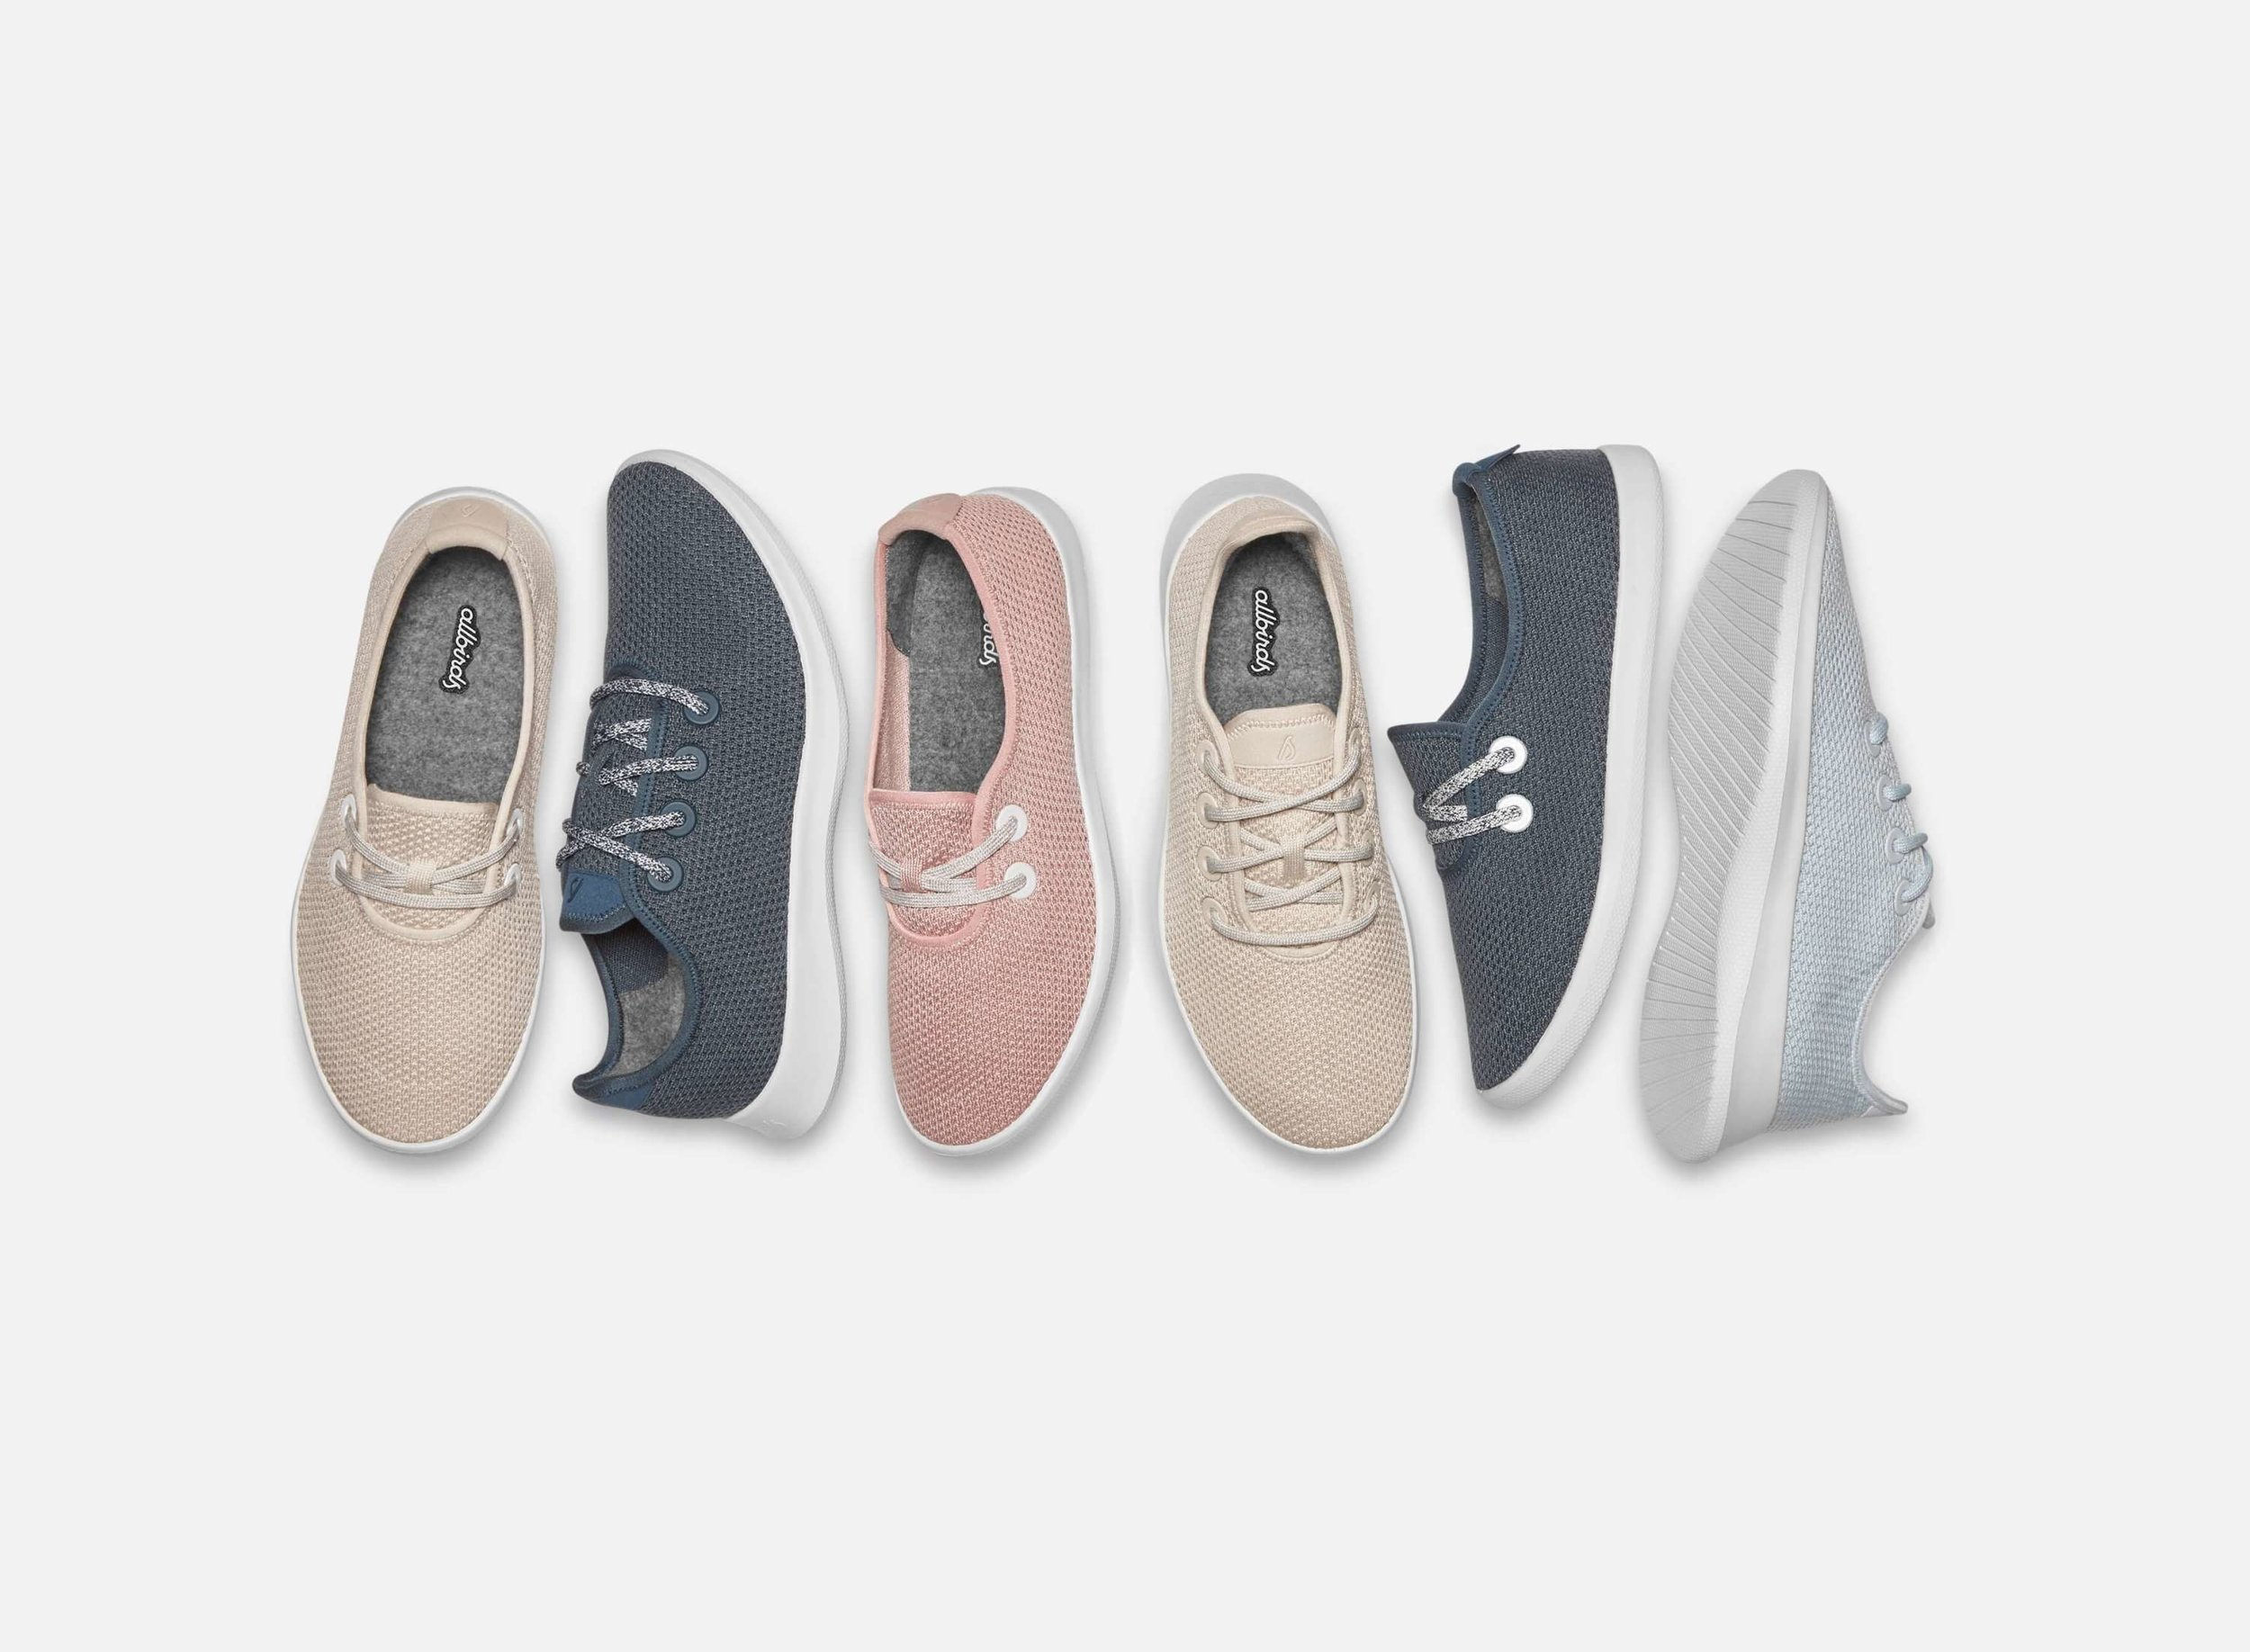 Allbirds unveils the Tree line, shoes made from eucalyptus tree fibre. Picture: Allbirds.